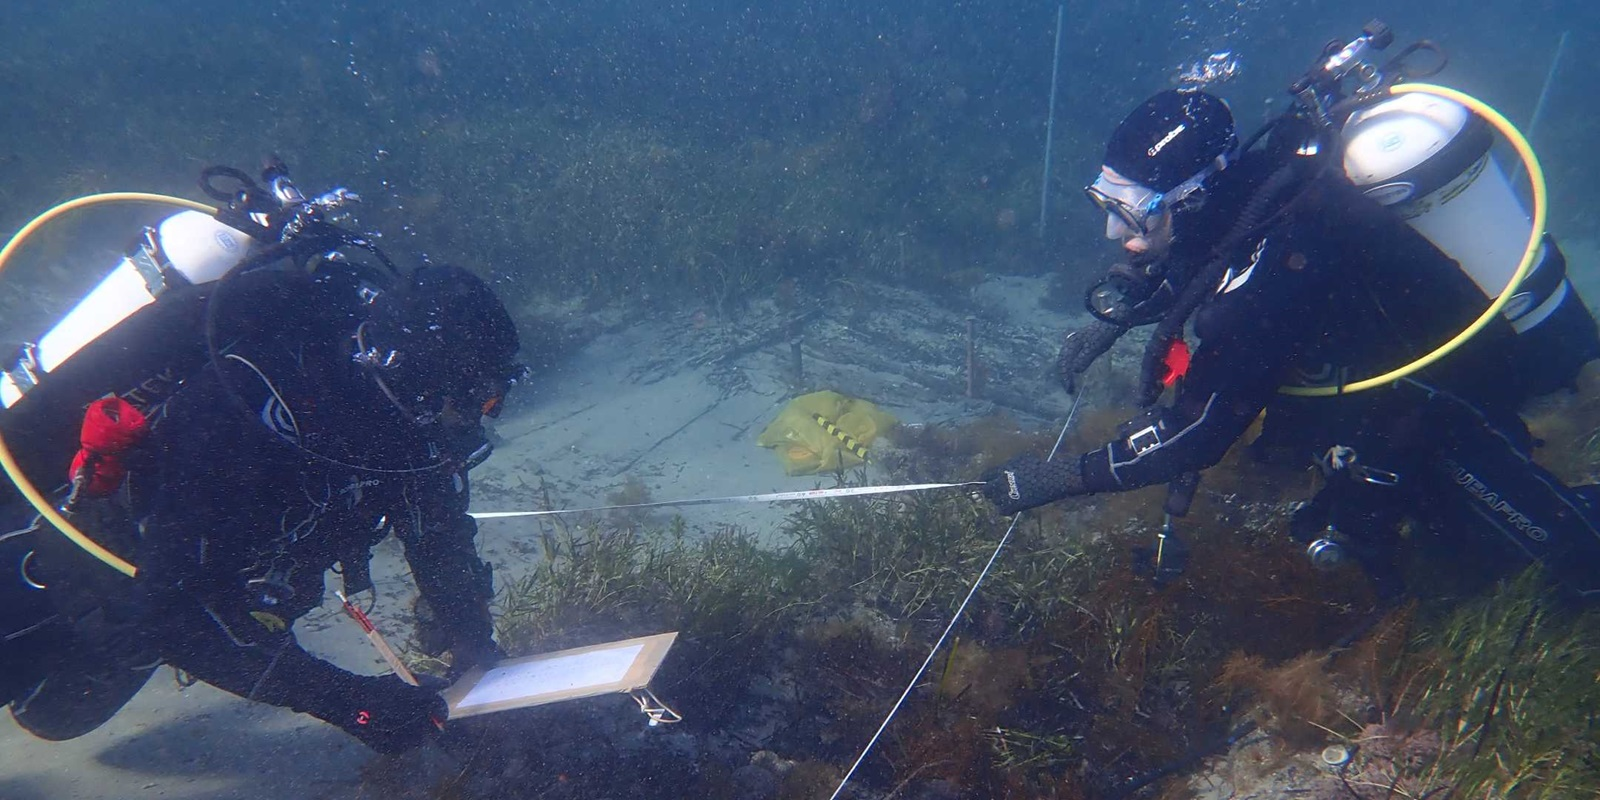 James Hunter (left) and Kieran Hosty use baseline-offset mapping to record the hull structure in South Australian's bow